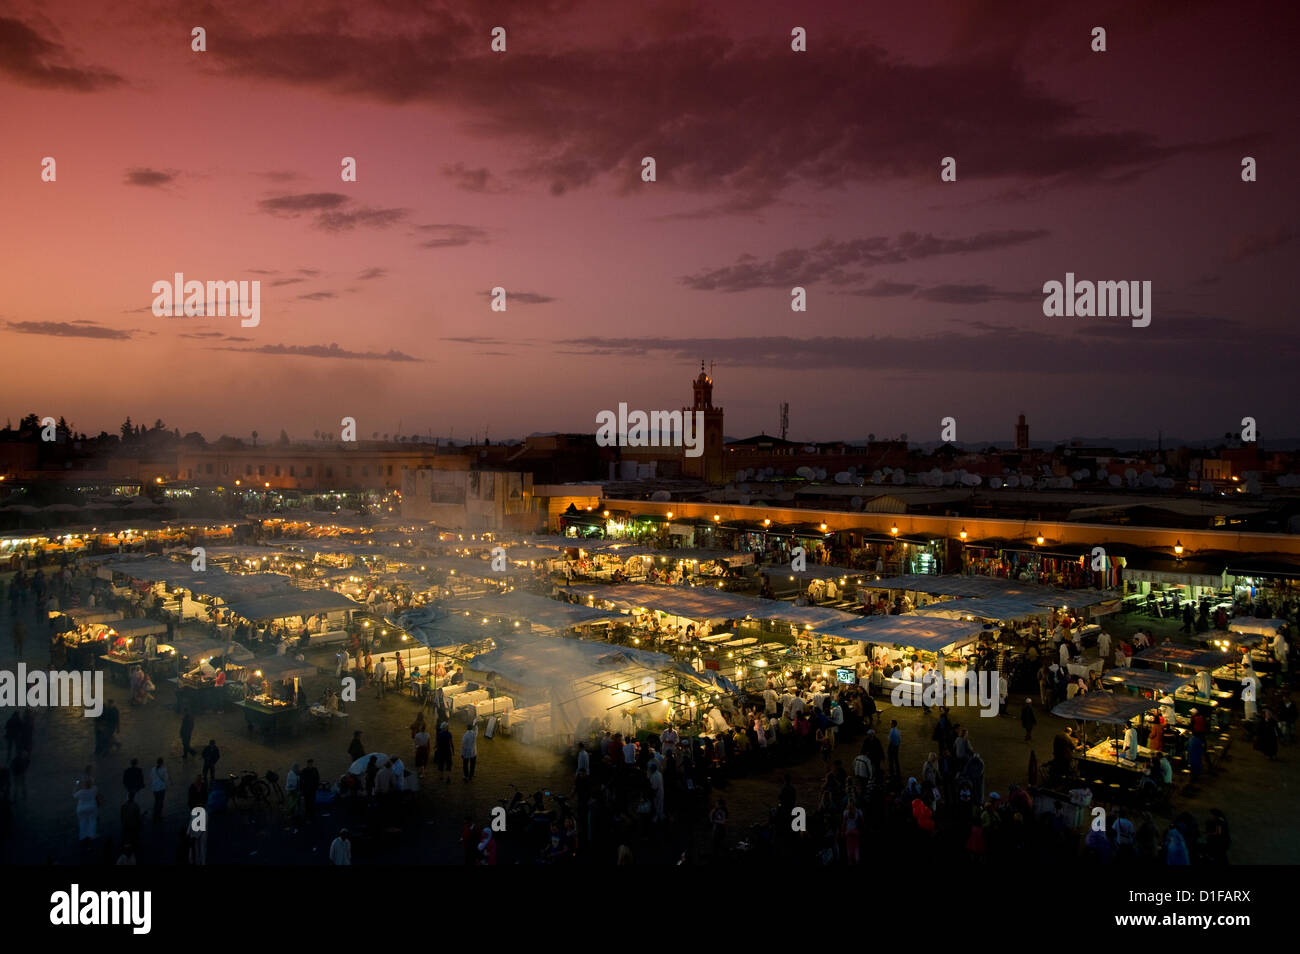 Food stalls at dusk in the main square, Jemaa el Fna in Marrakech, Morocco, North Africa, Africa - Stock Image